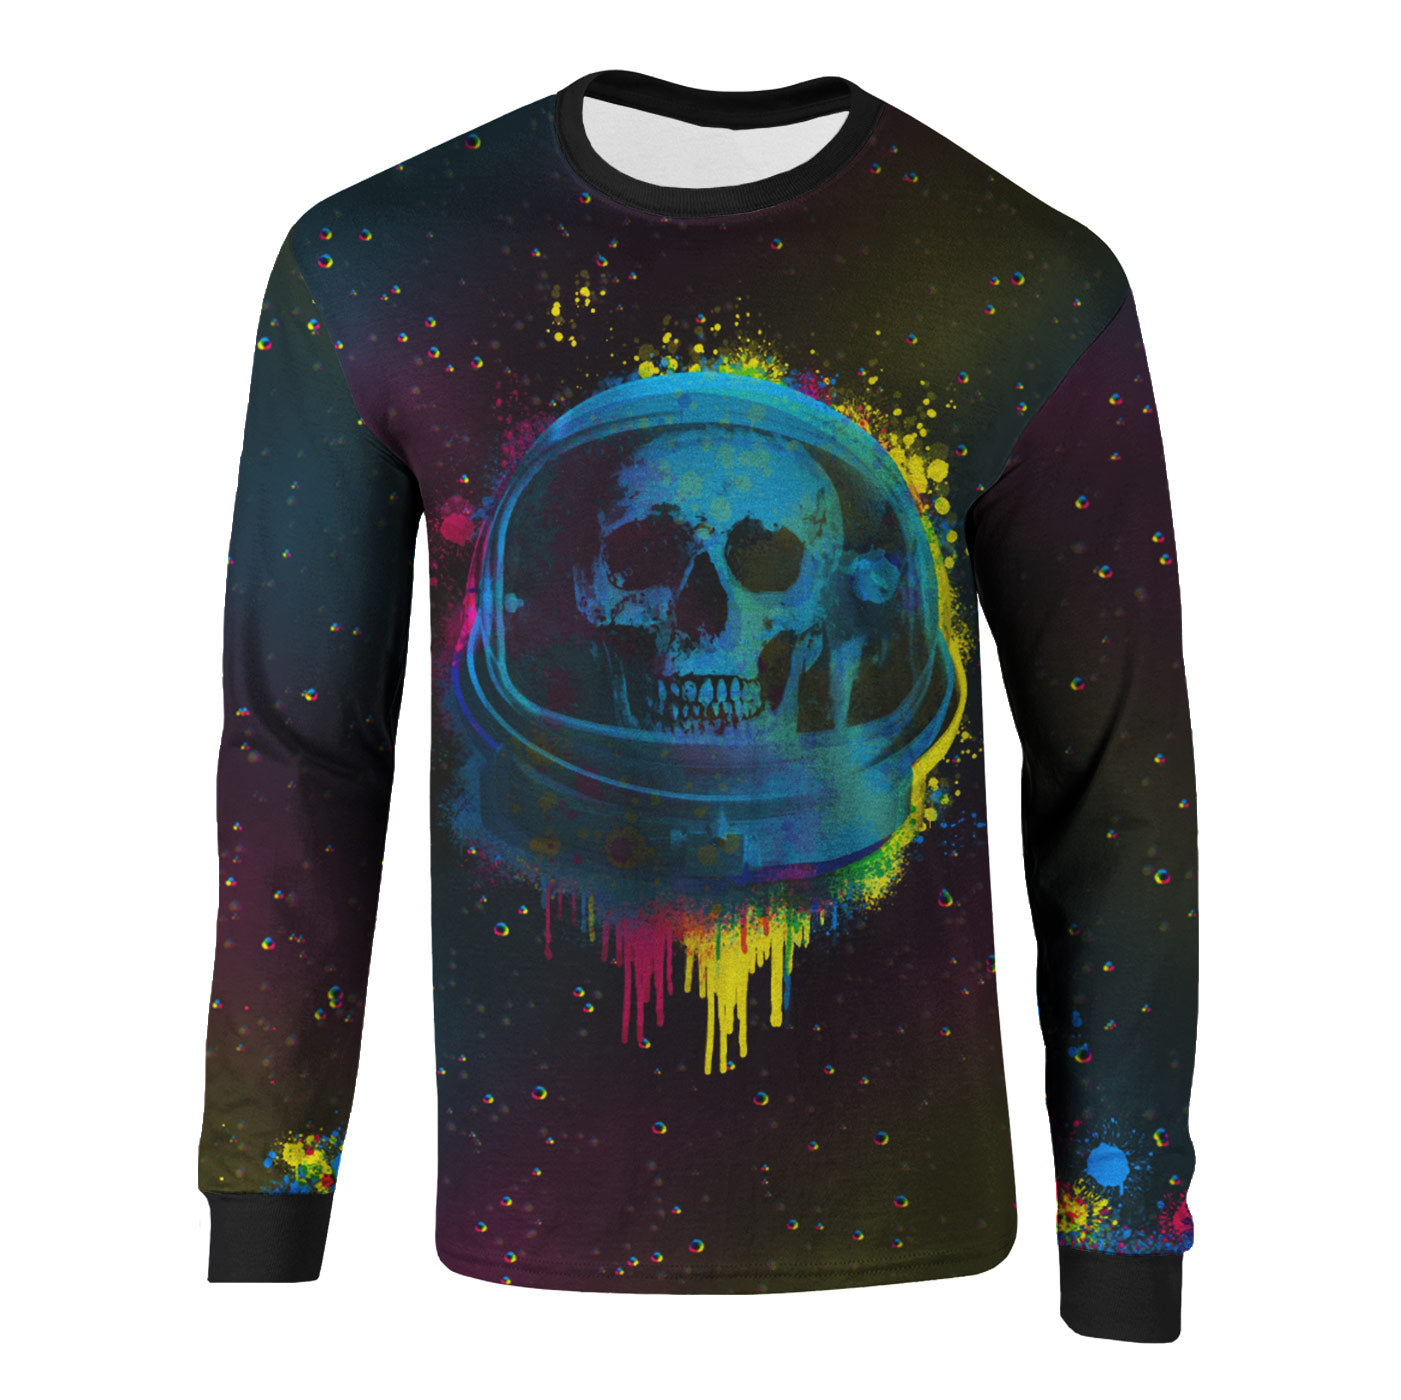 Astro Skull Long Sleeve Shirt